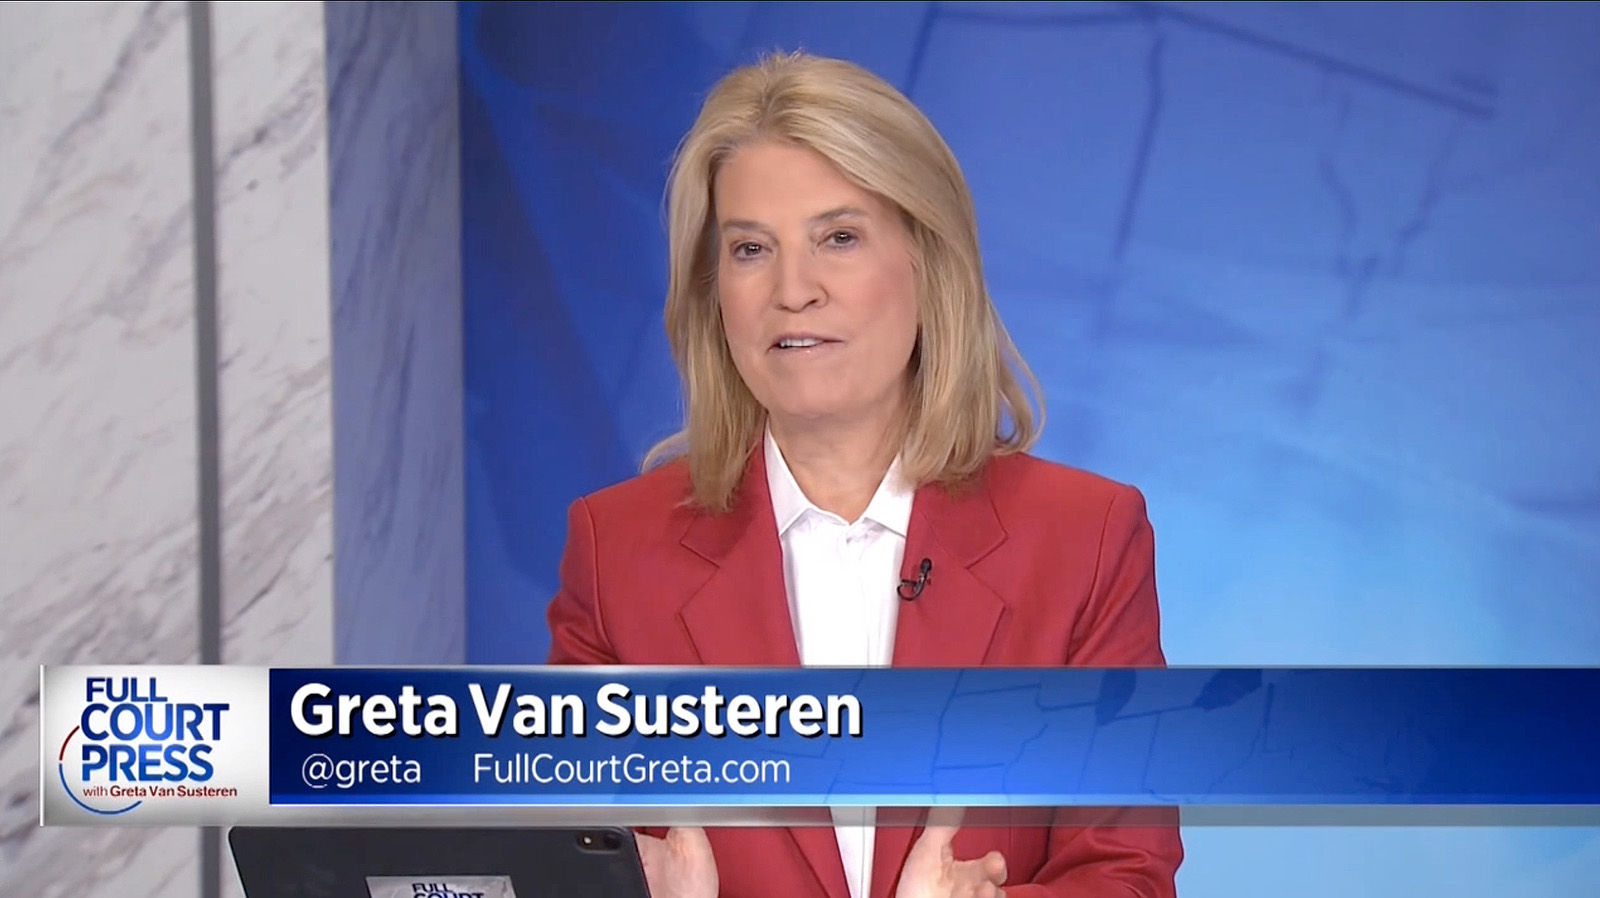 NCS_Gray-Television_Full-Court-Press_Greta-Van-Susteren_0004